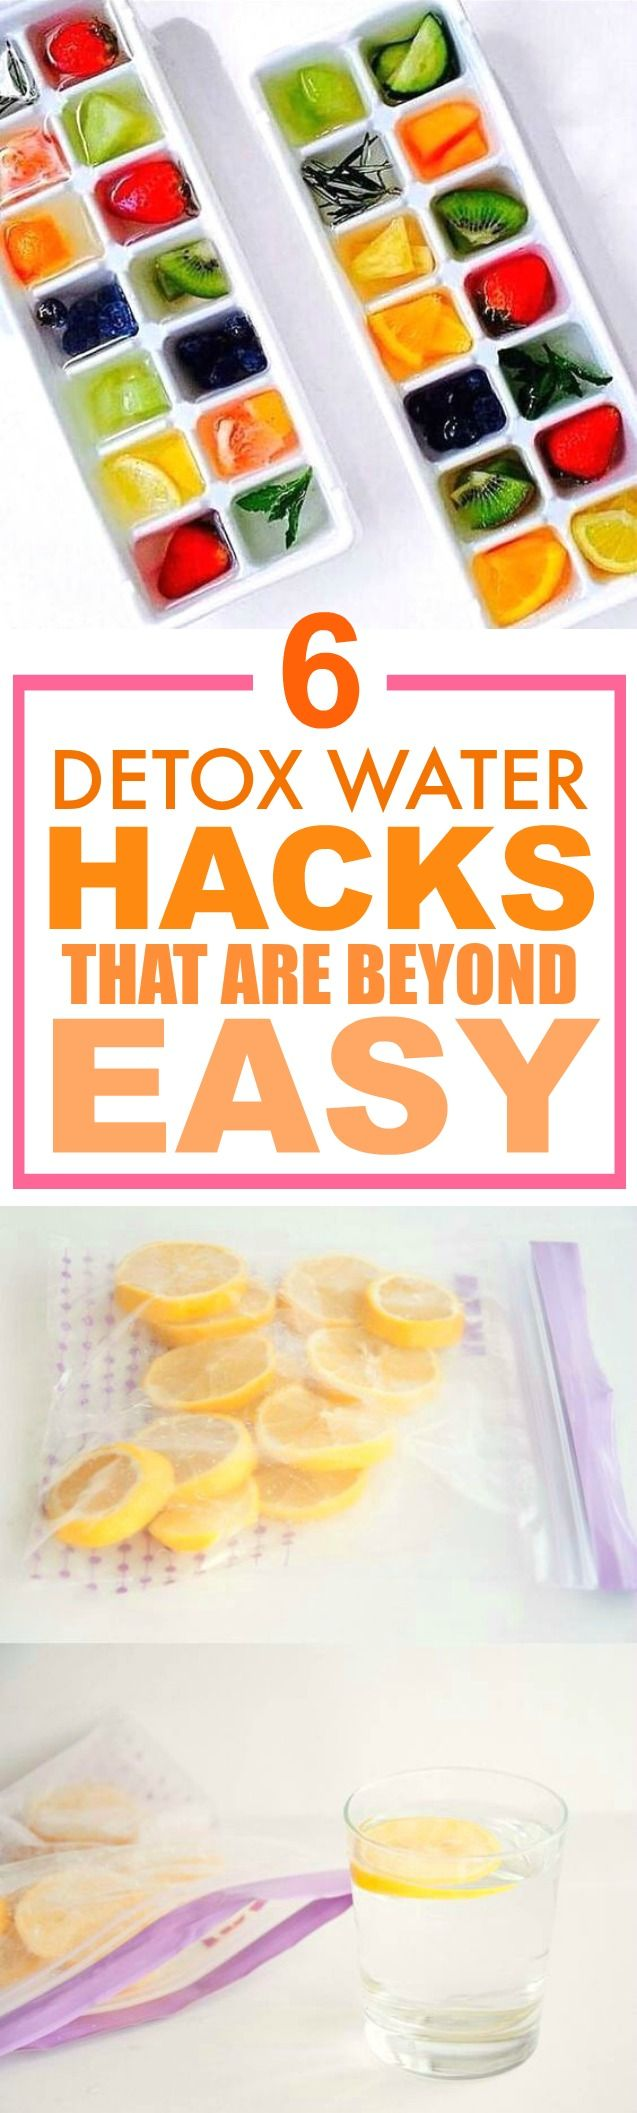 These 6 water detox hacks are THE BEST! I'm so glad I found this AMAZING post! I've tried a couple of these and I've definitely lost weight... ALREADY! I can't believe how easy these are! SO pinning for later!